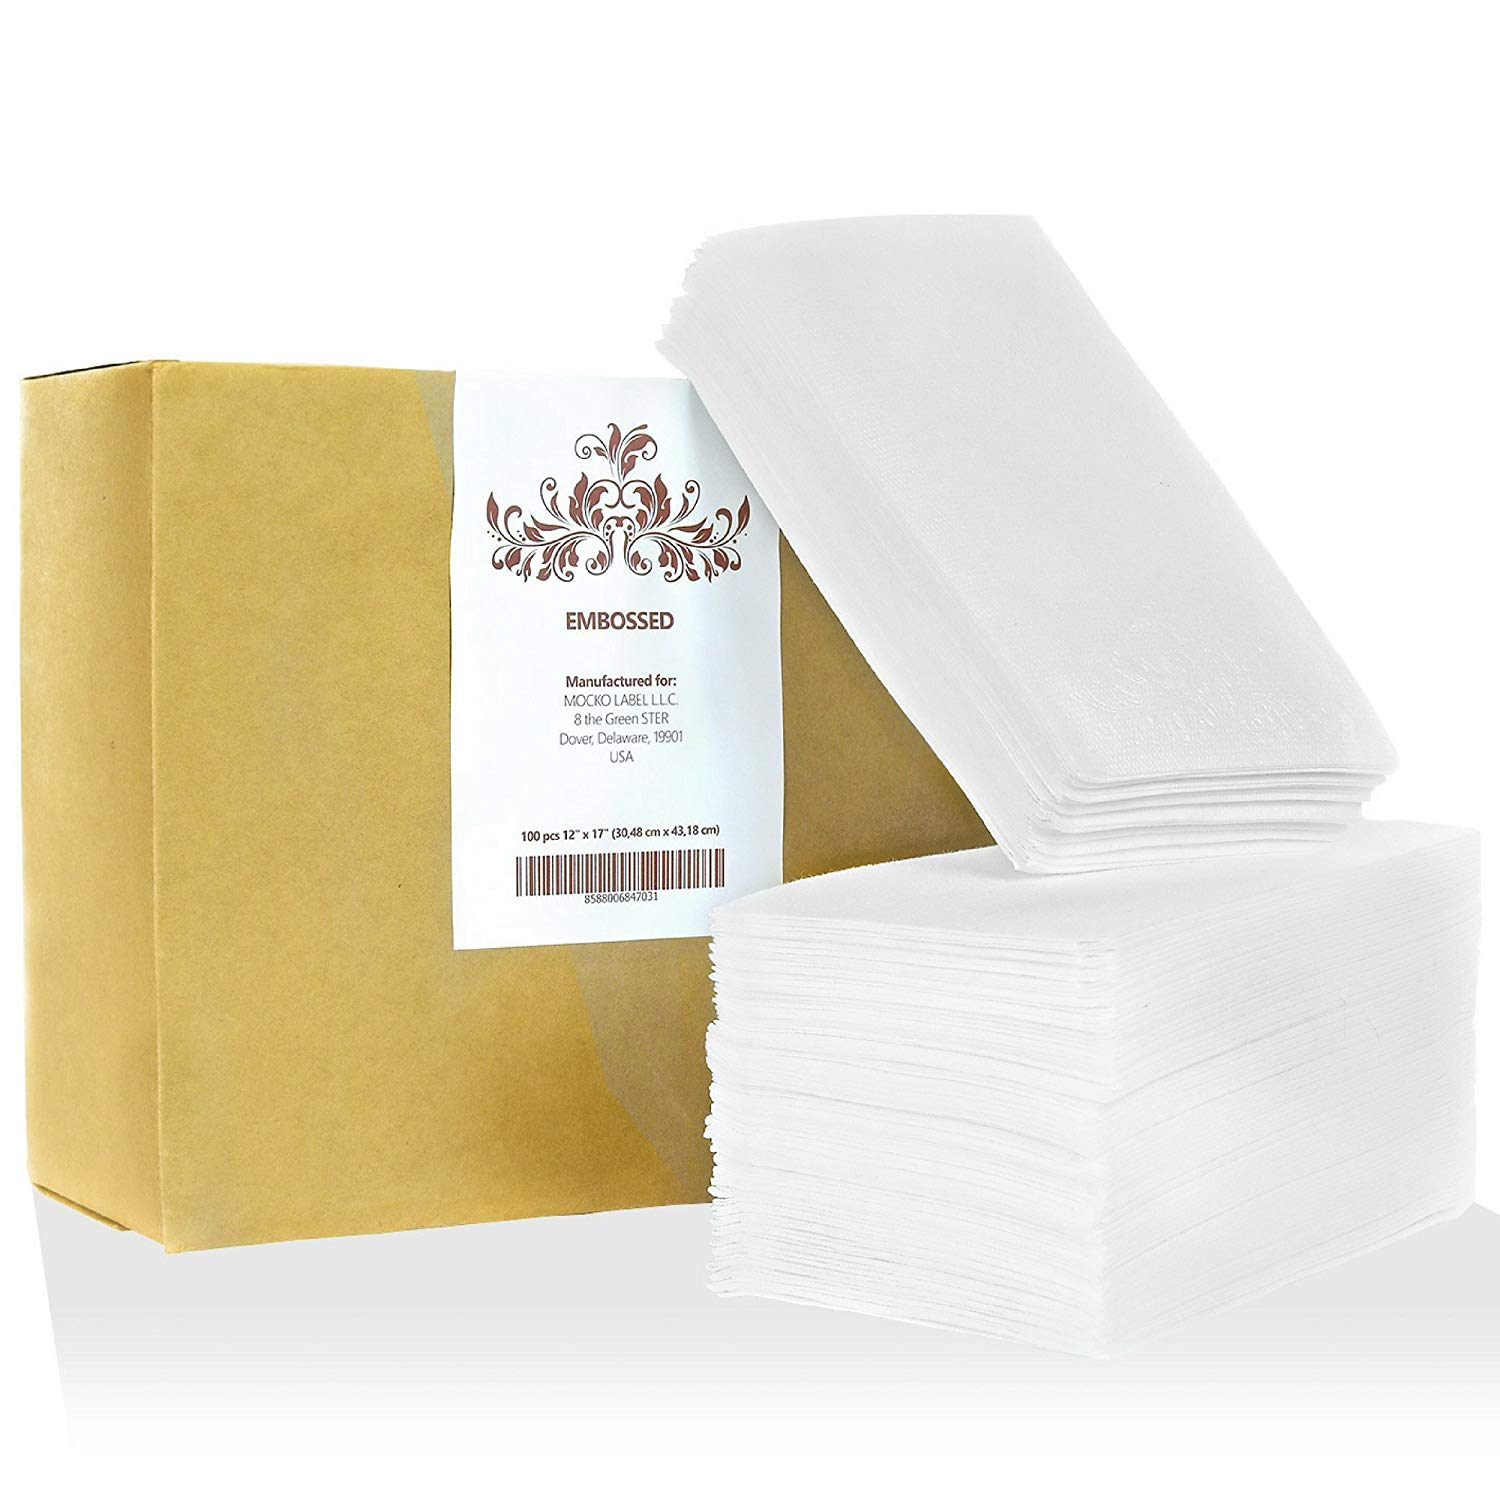 MOCKO Disposable Hand Napkins: 100 Absorbent Air-Laid Paper Bathroom Guest Towels, Floral Embossed Cloth-Like Soft Hand Towels, Elegant White For Birthday & Cocktail Parties, Dinners, Events, Weddings